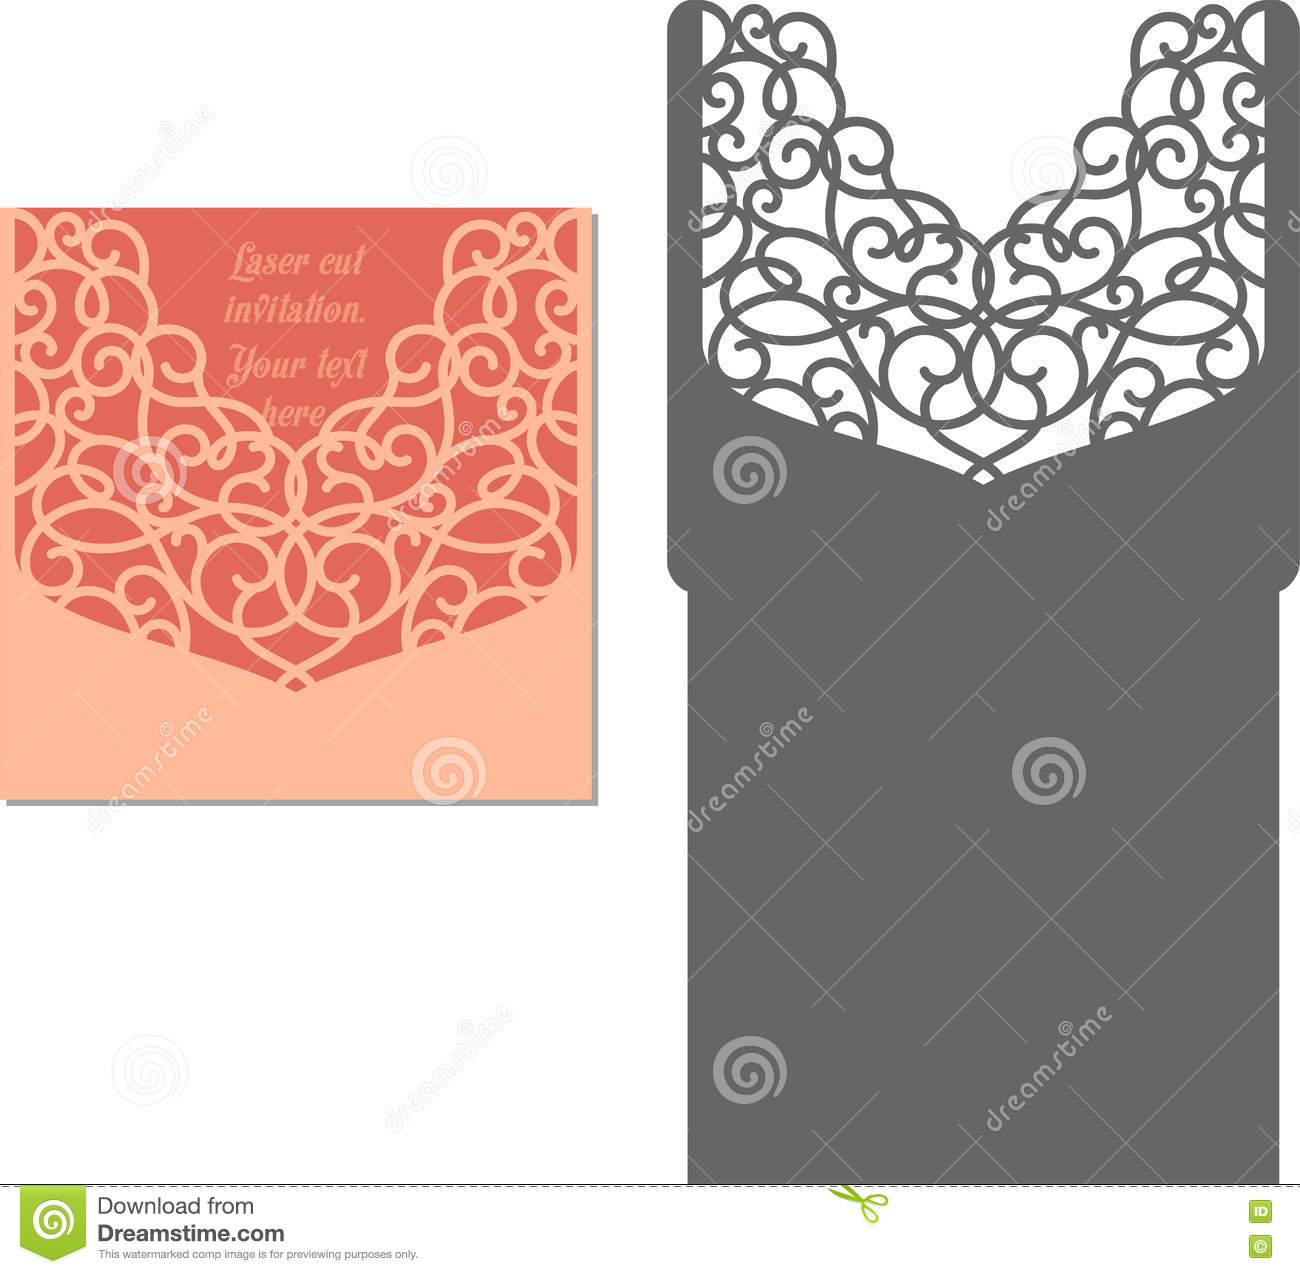 Square Wedding Invitations with amazing invitations layout